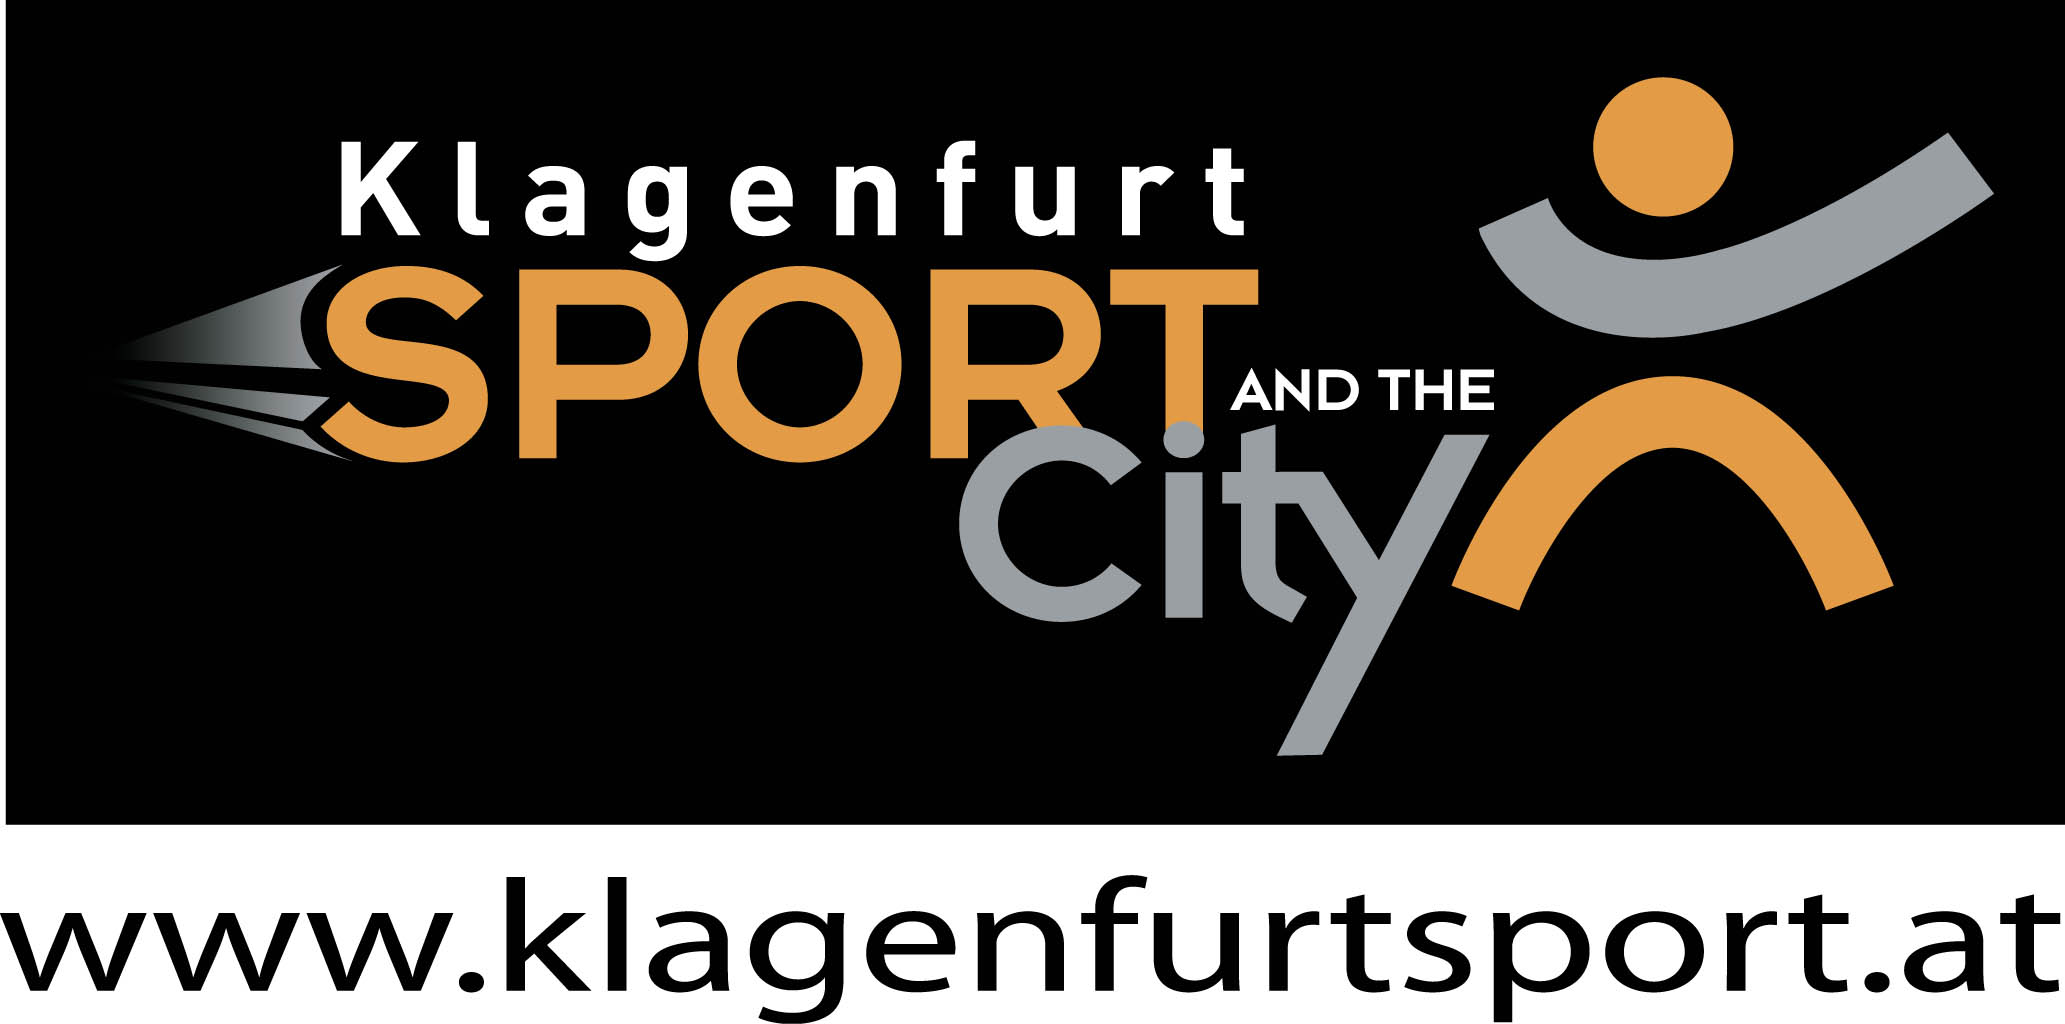 Sport and the City